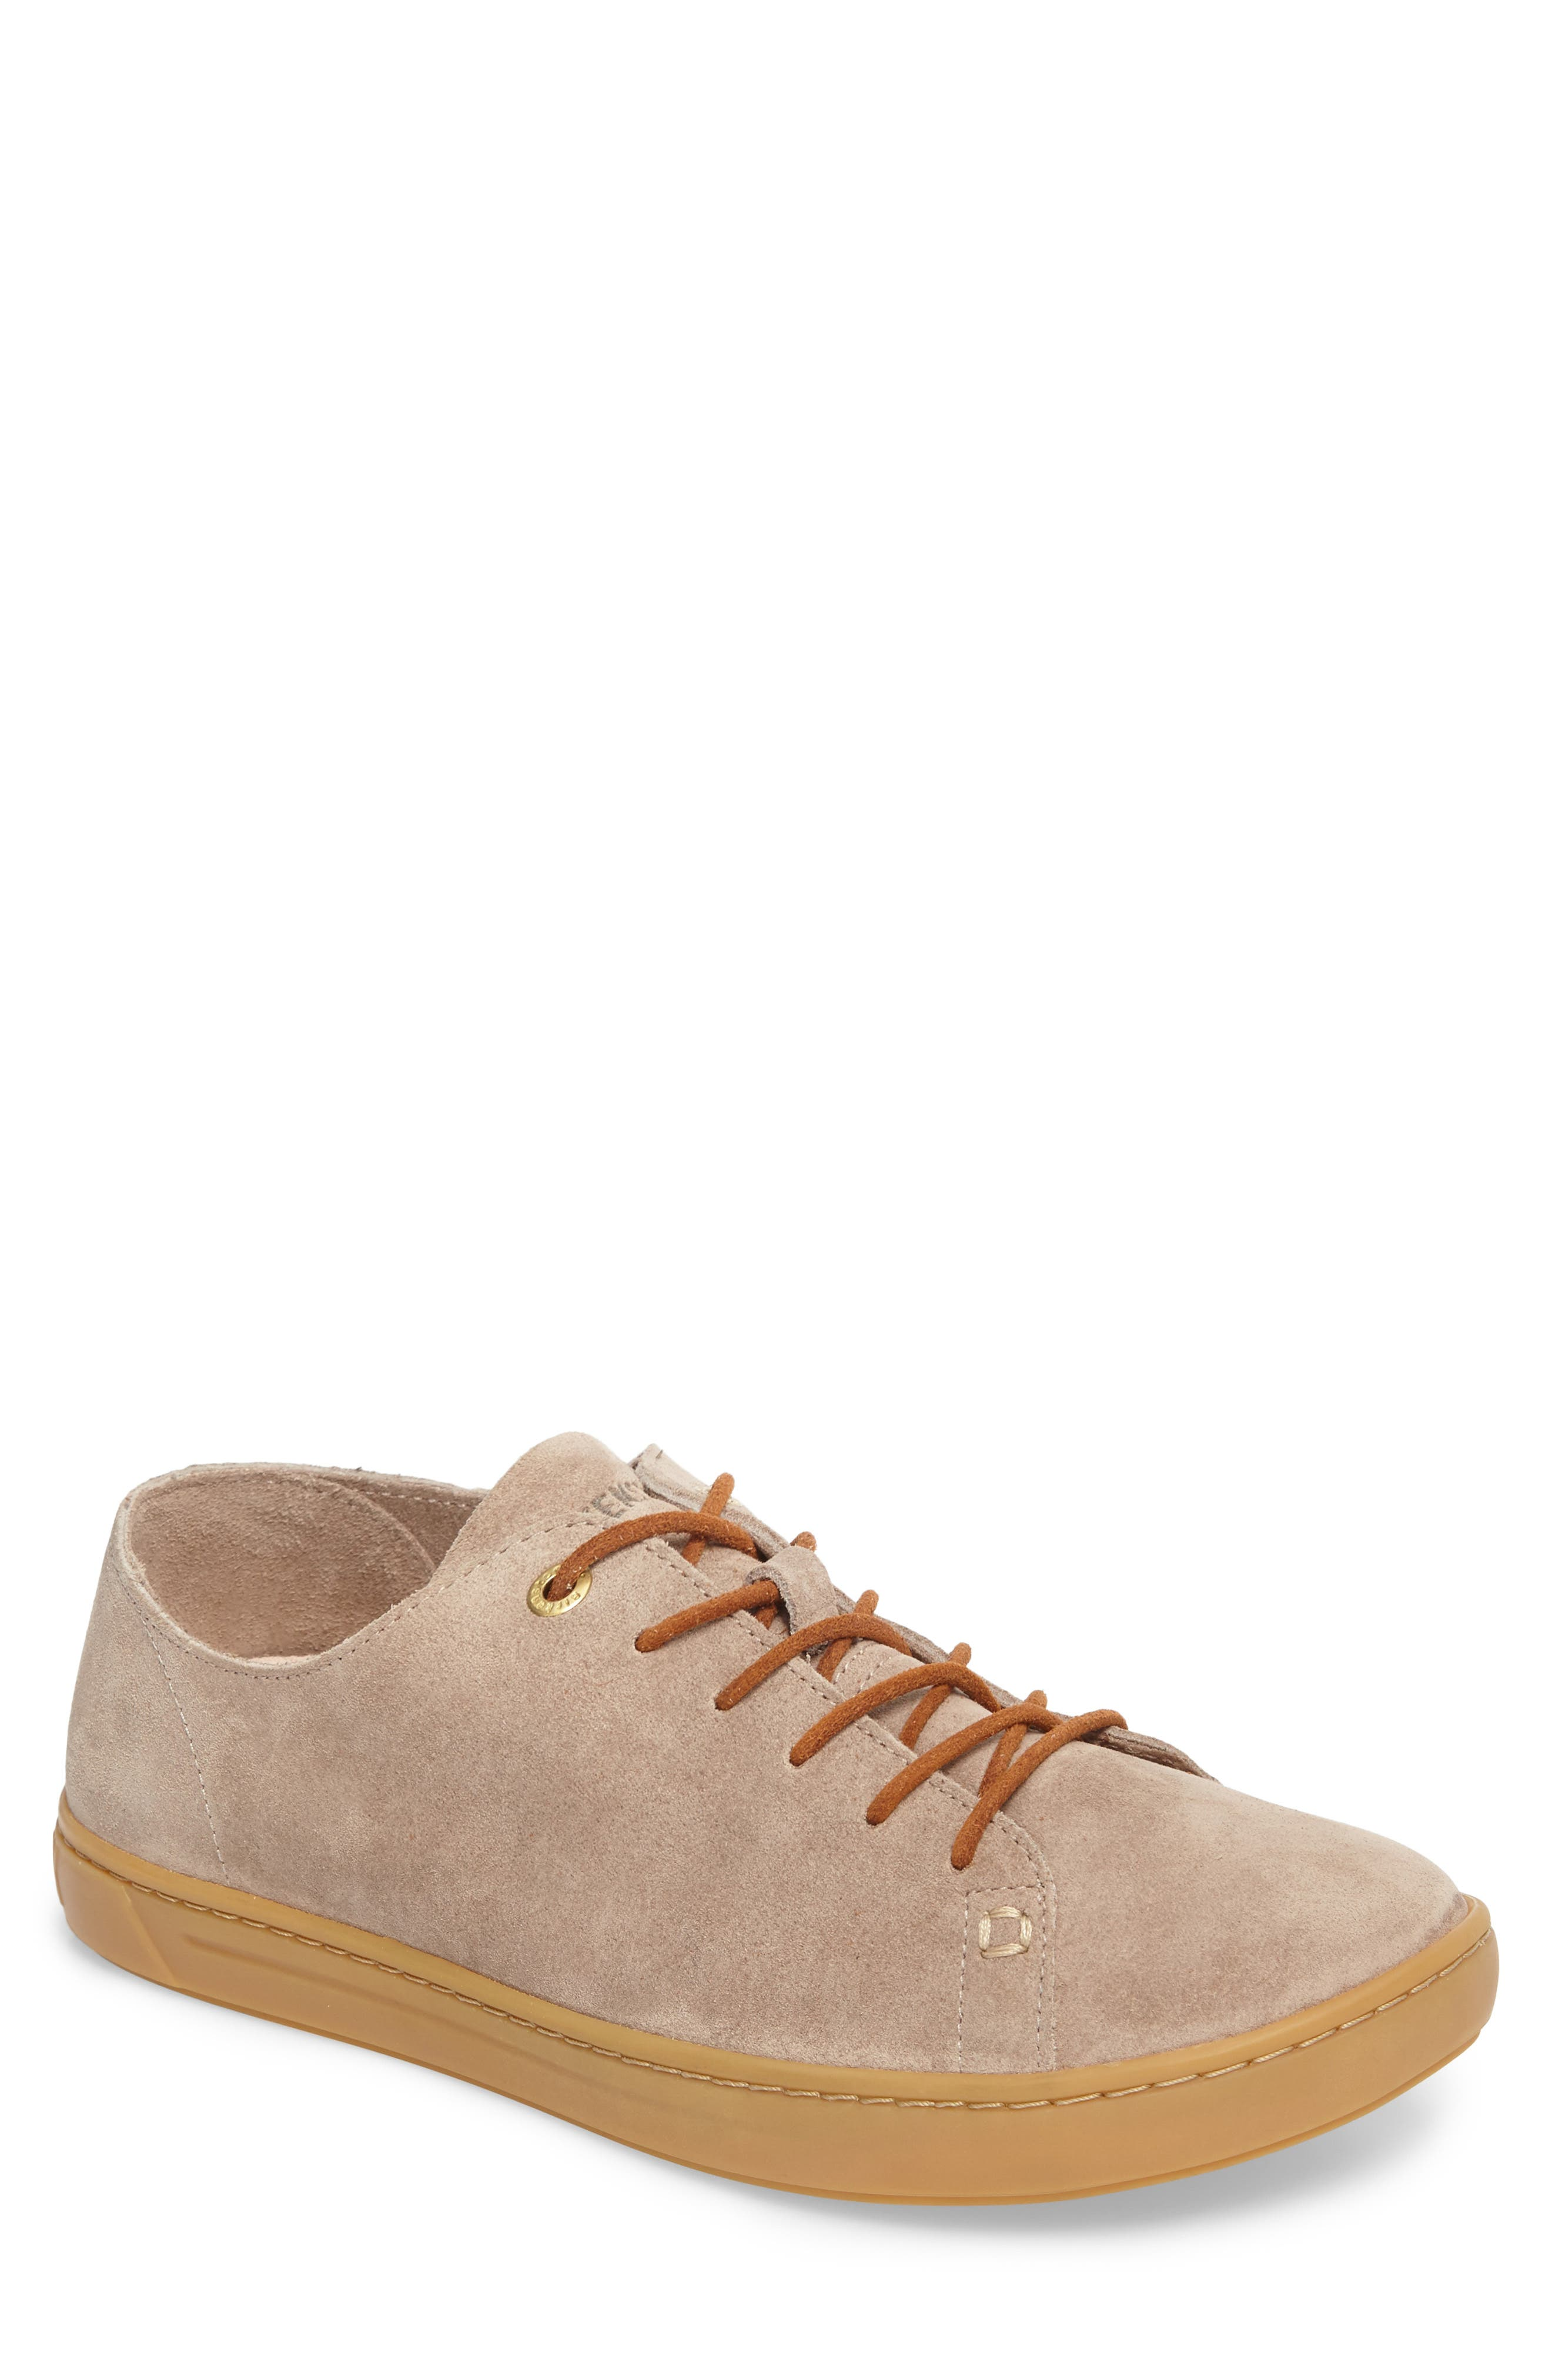 Arran Sneaker,                             Main thumbnail 1, color,                             Taupe Suede